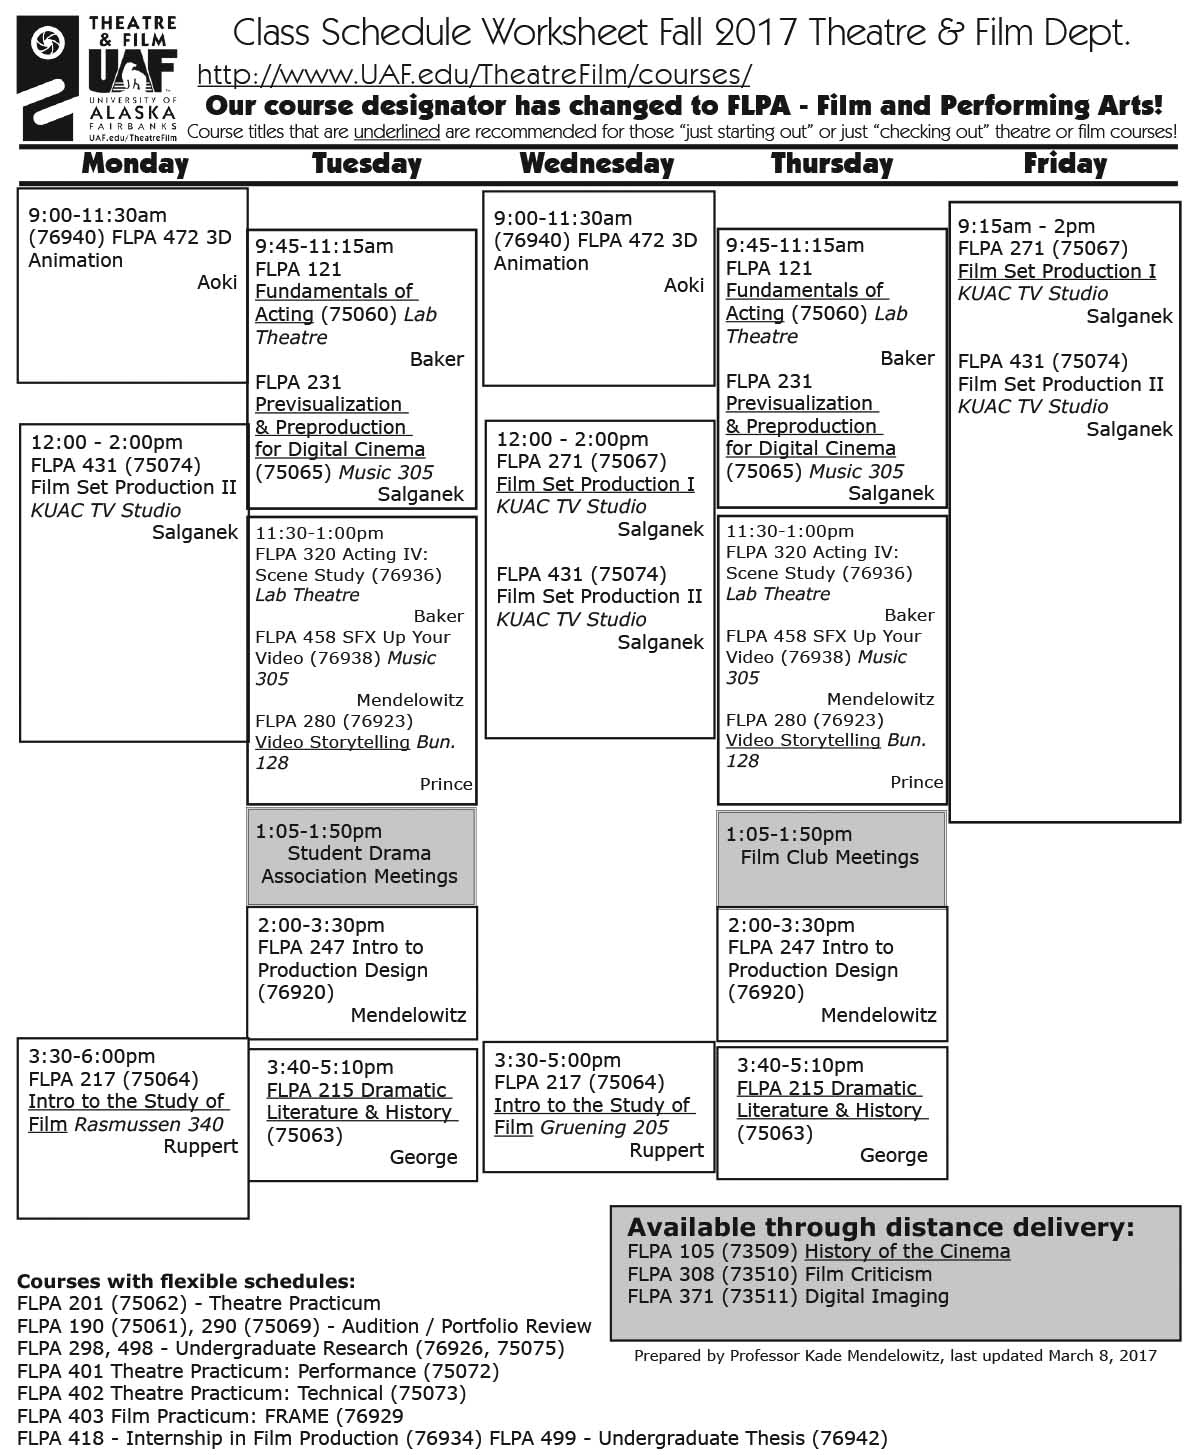 Fall 2017 Course worksheet